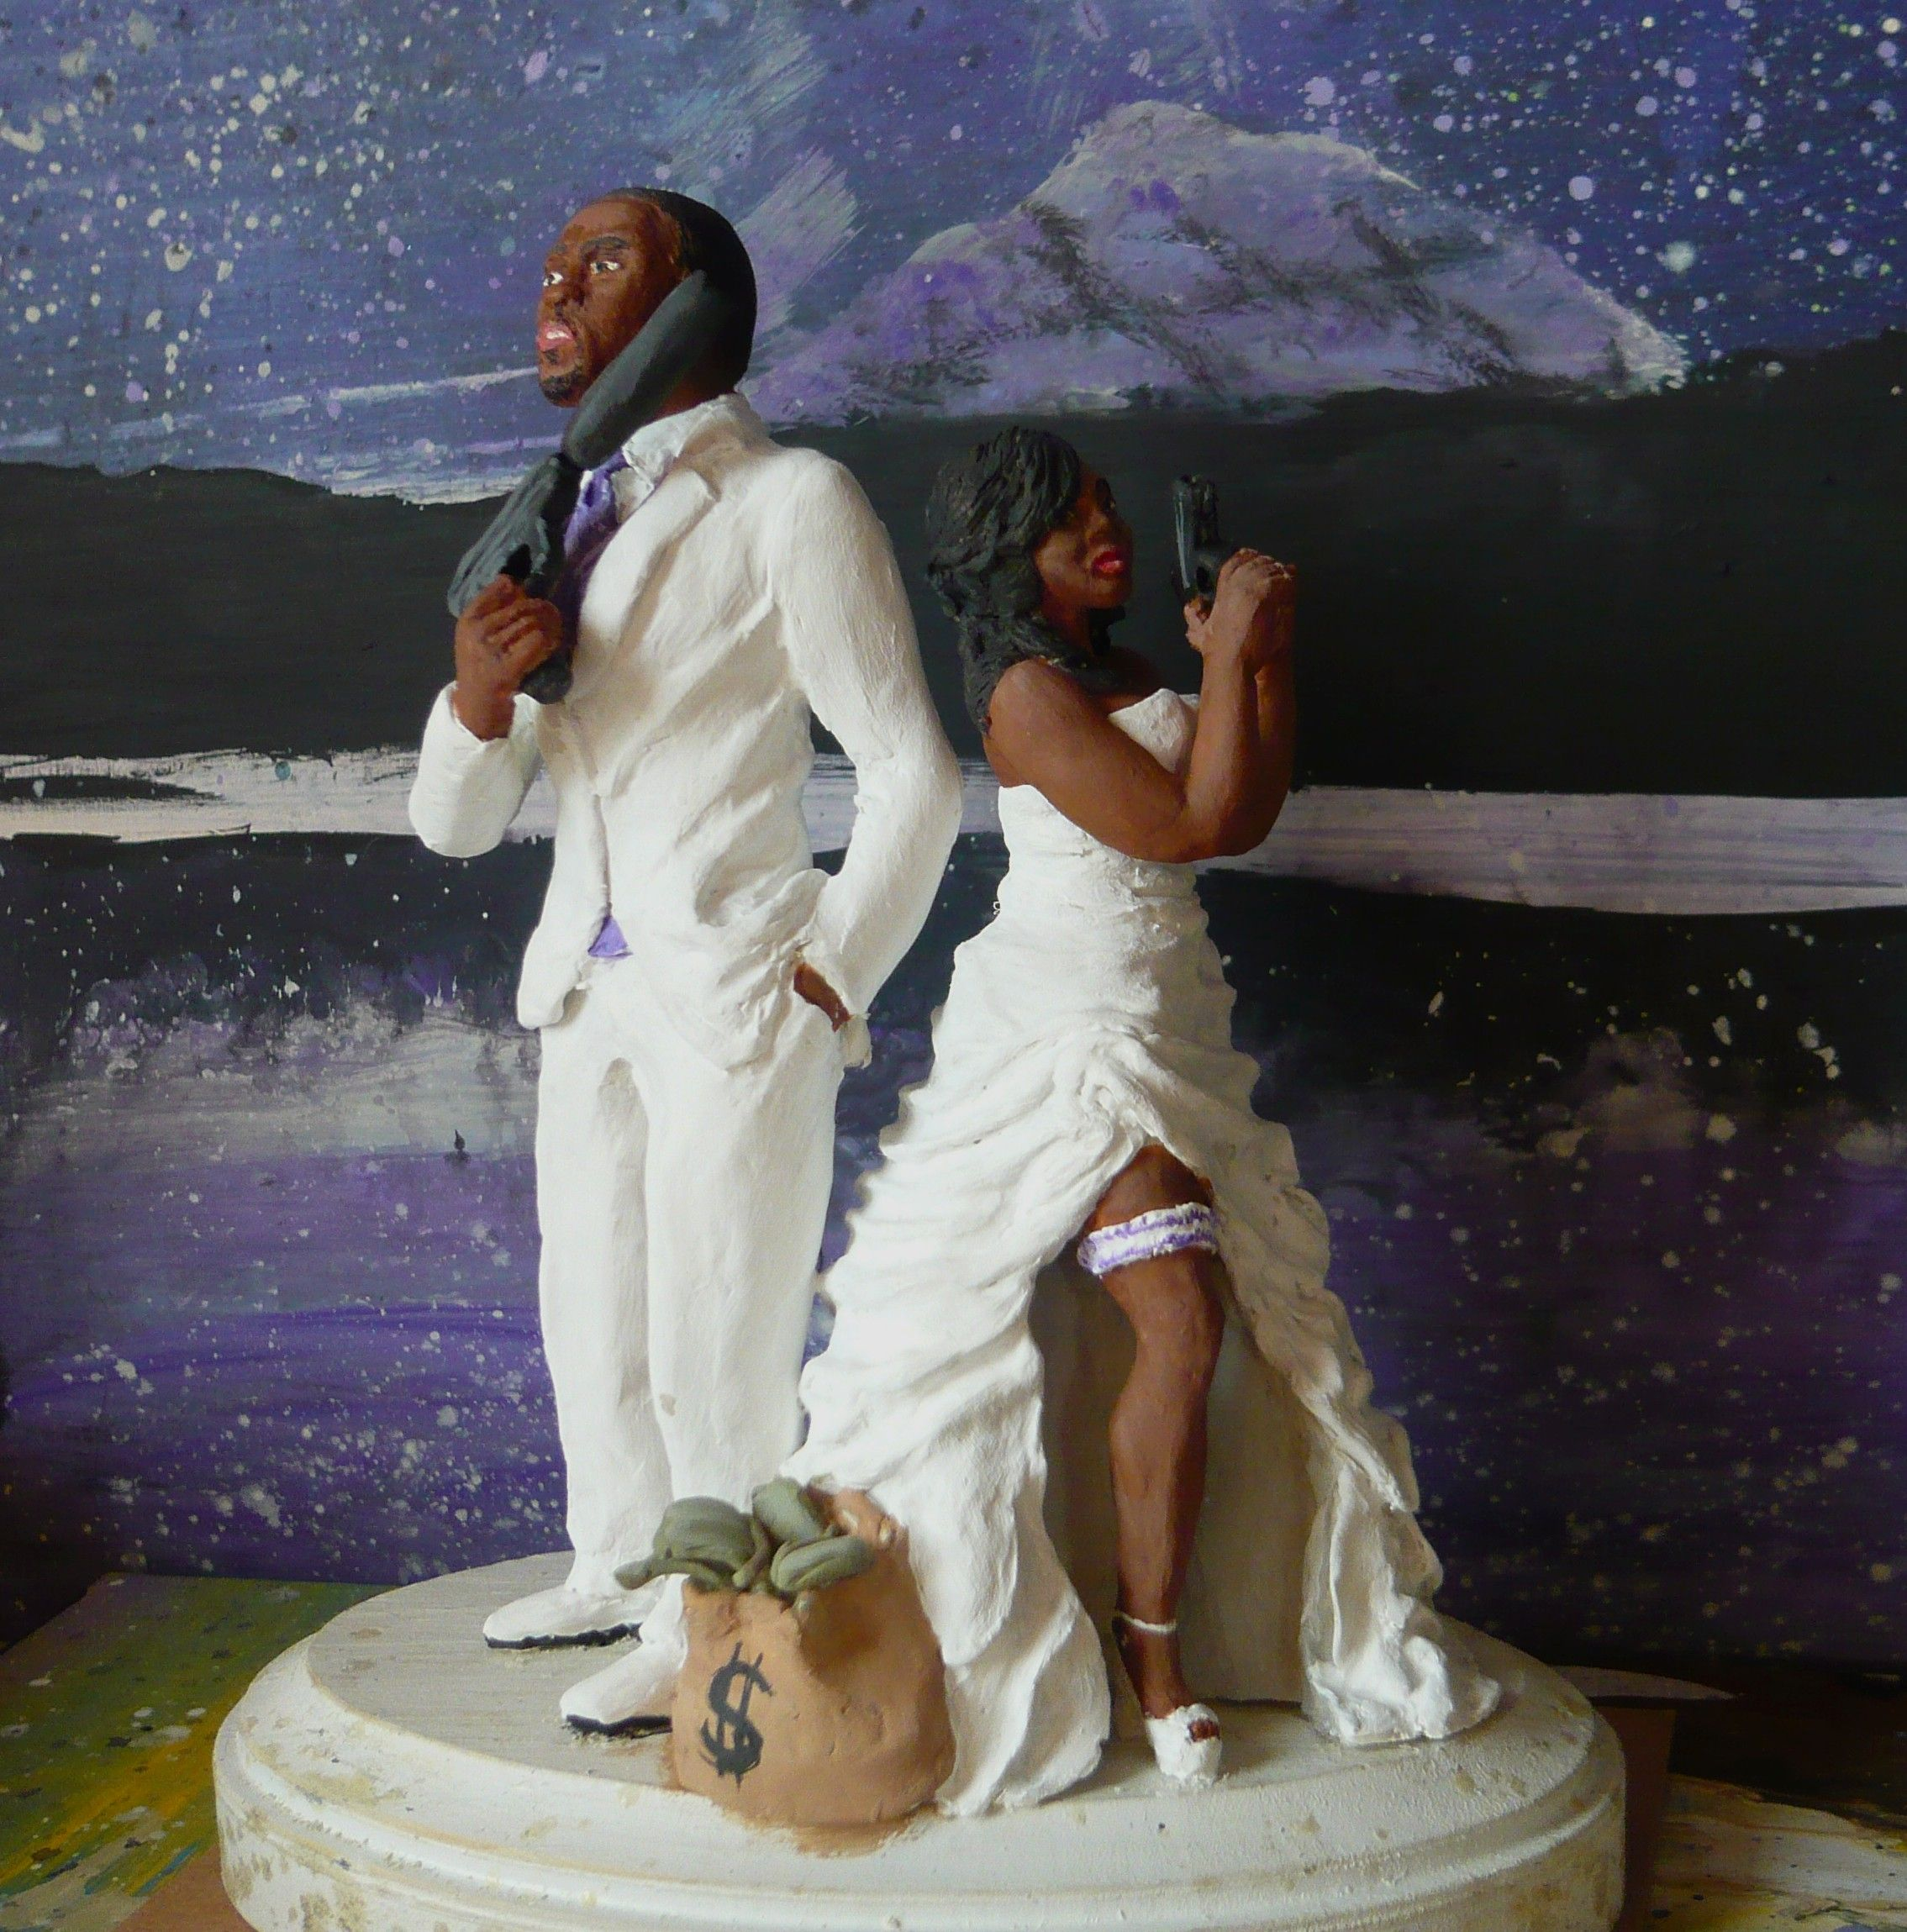 Funny Wedding Cake Toppers African American: Buy A Hand Made Custom Wedding Cake Topper, Made To Order